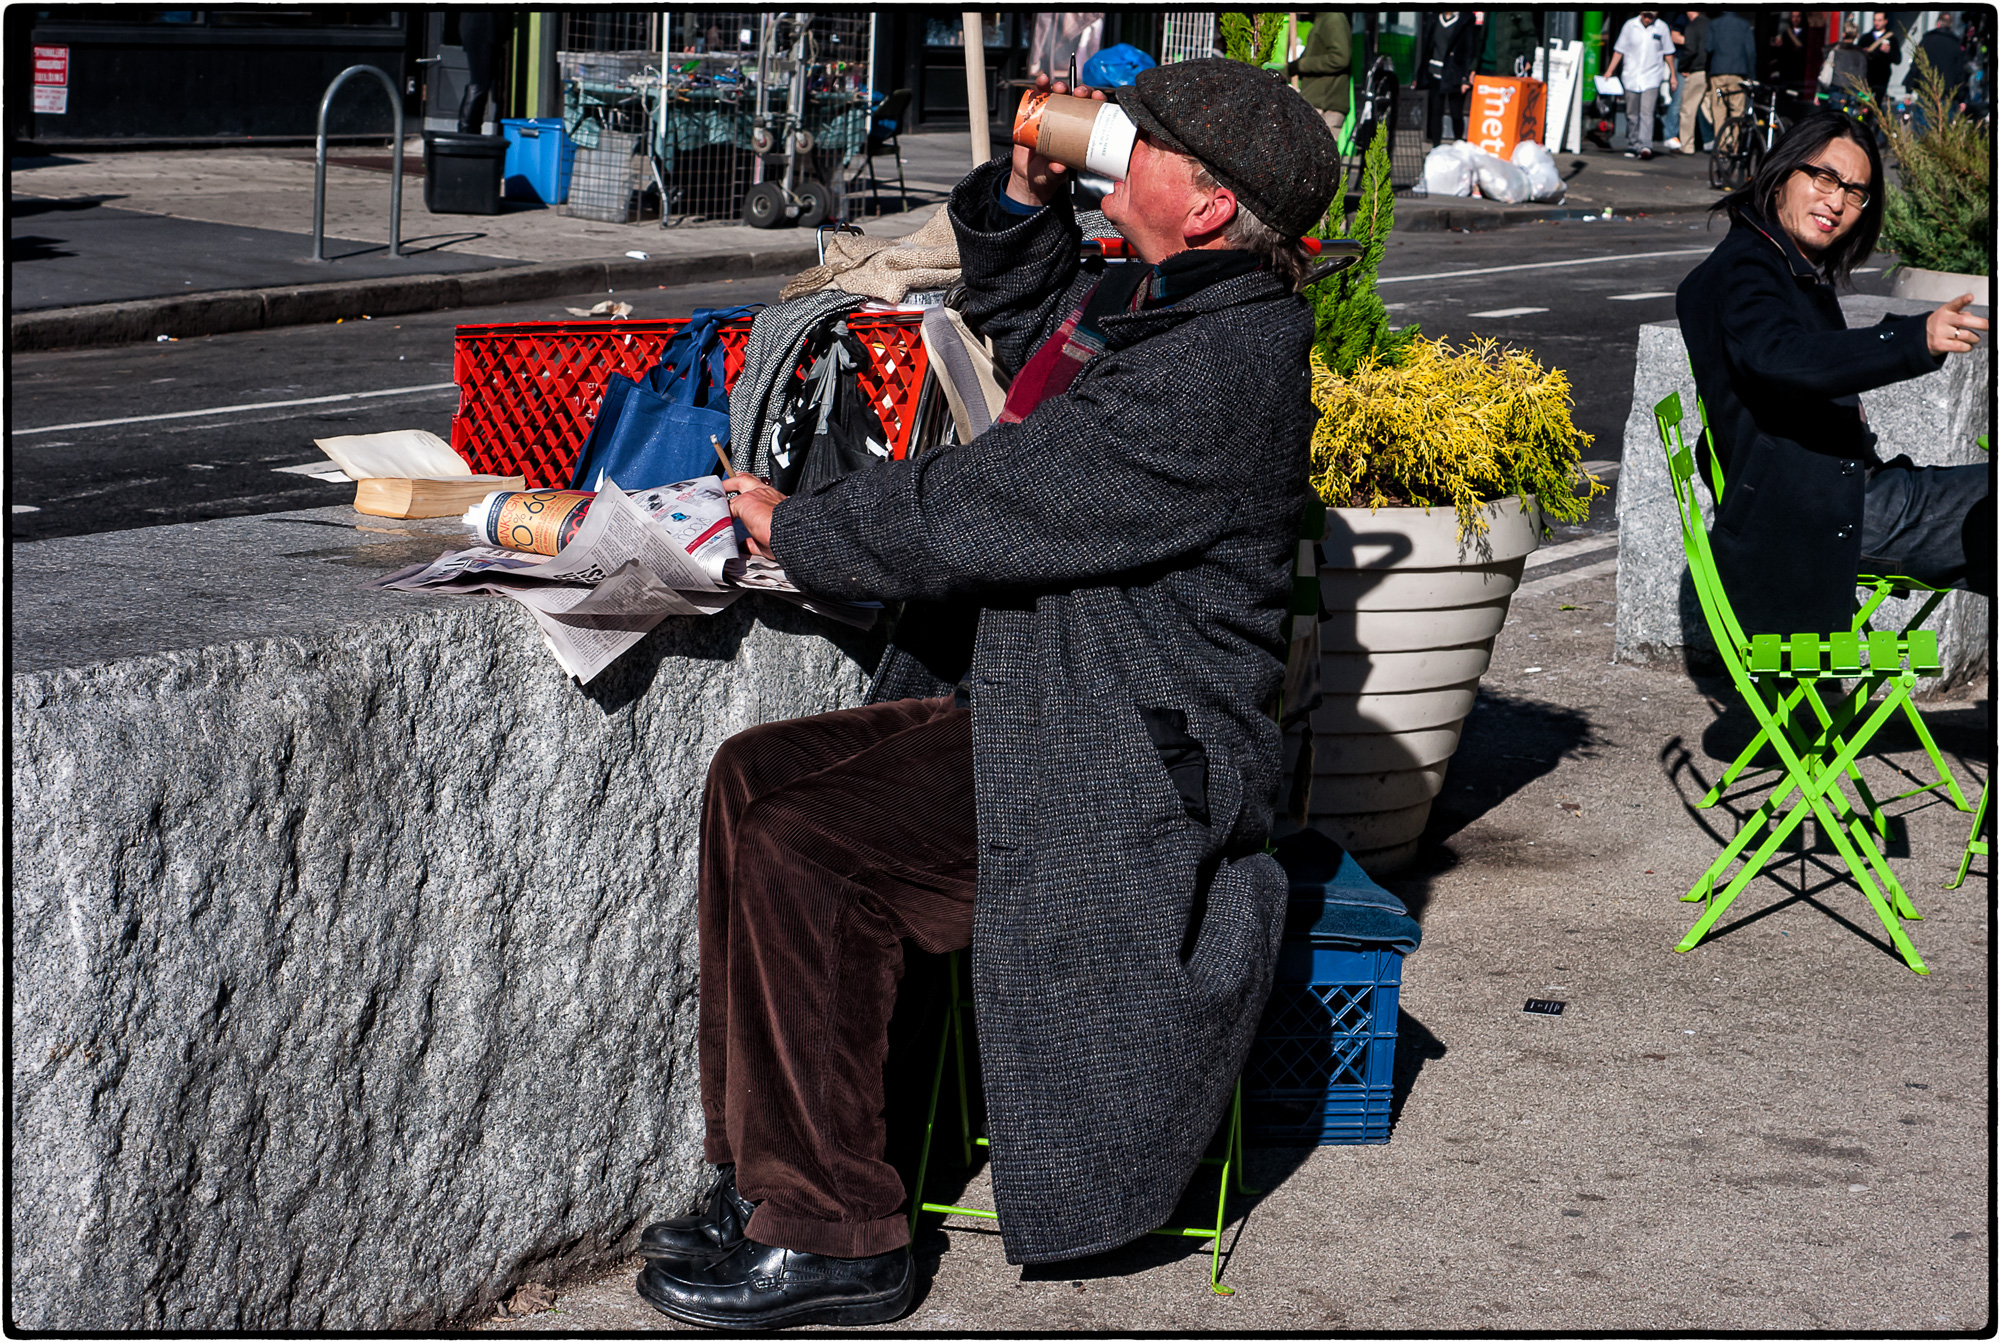 2015-Homeless-paper-reader.jpg